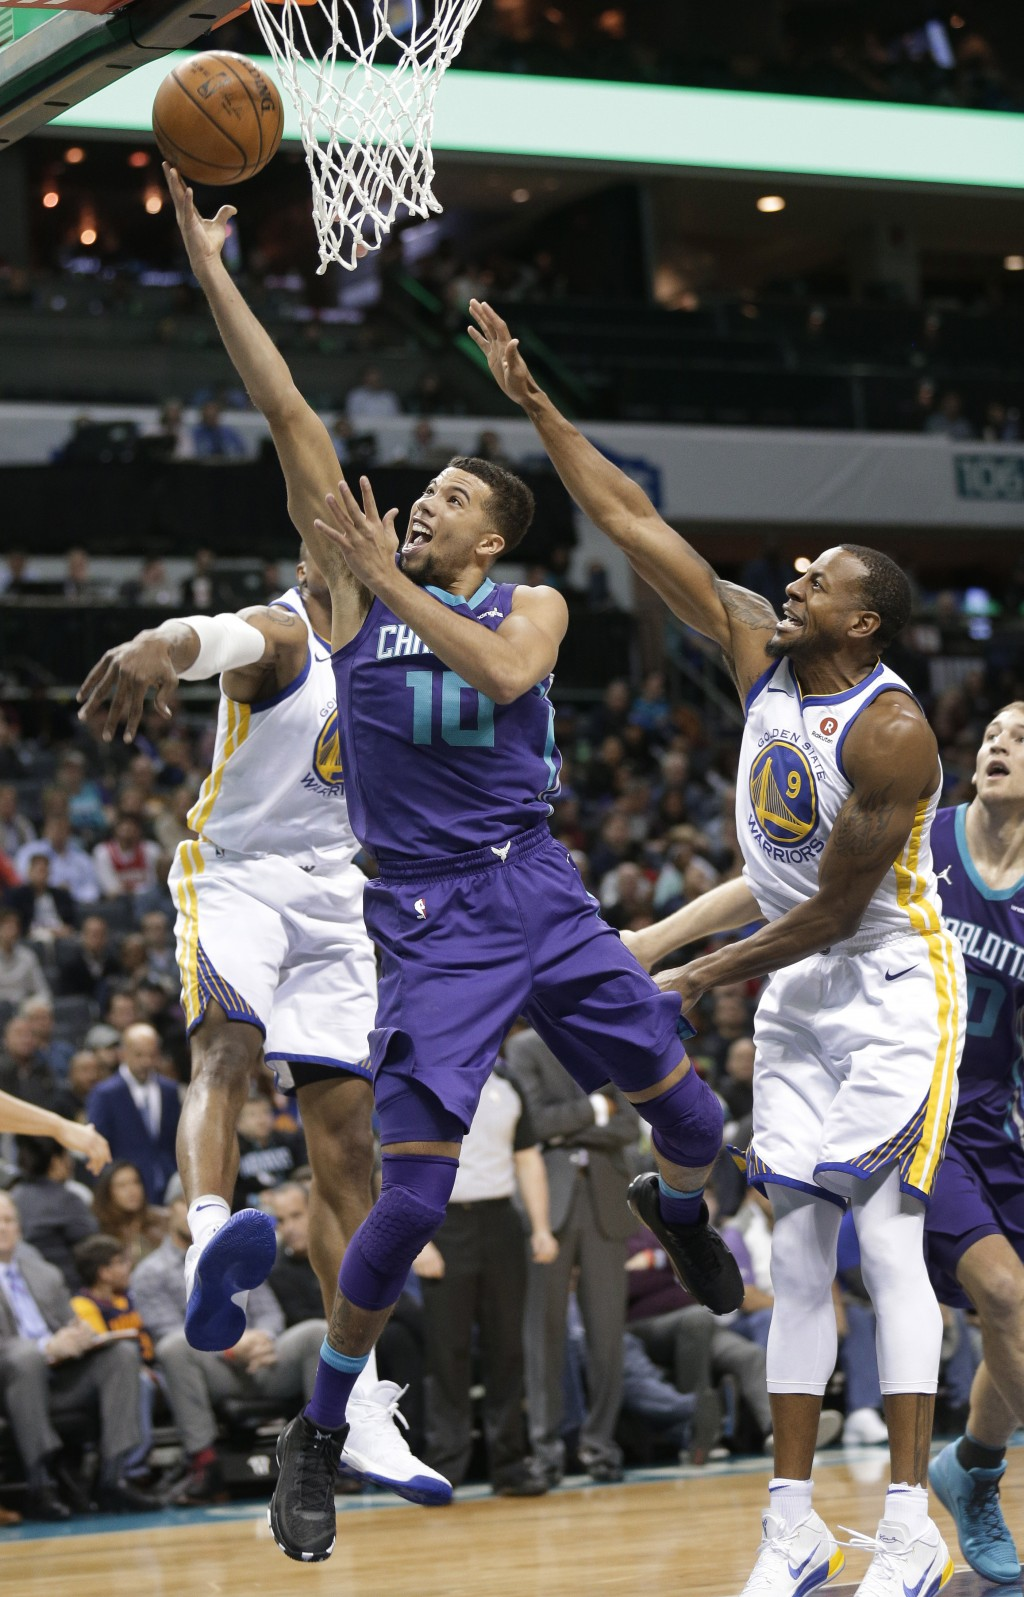 Charlotte Hornets' Michael Carter-Williams (10) drives past Golden State Warriors' Andre Iguodala (9) during the first half of an NBA basketball game